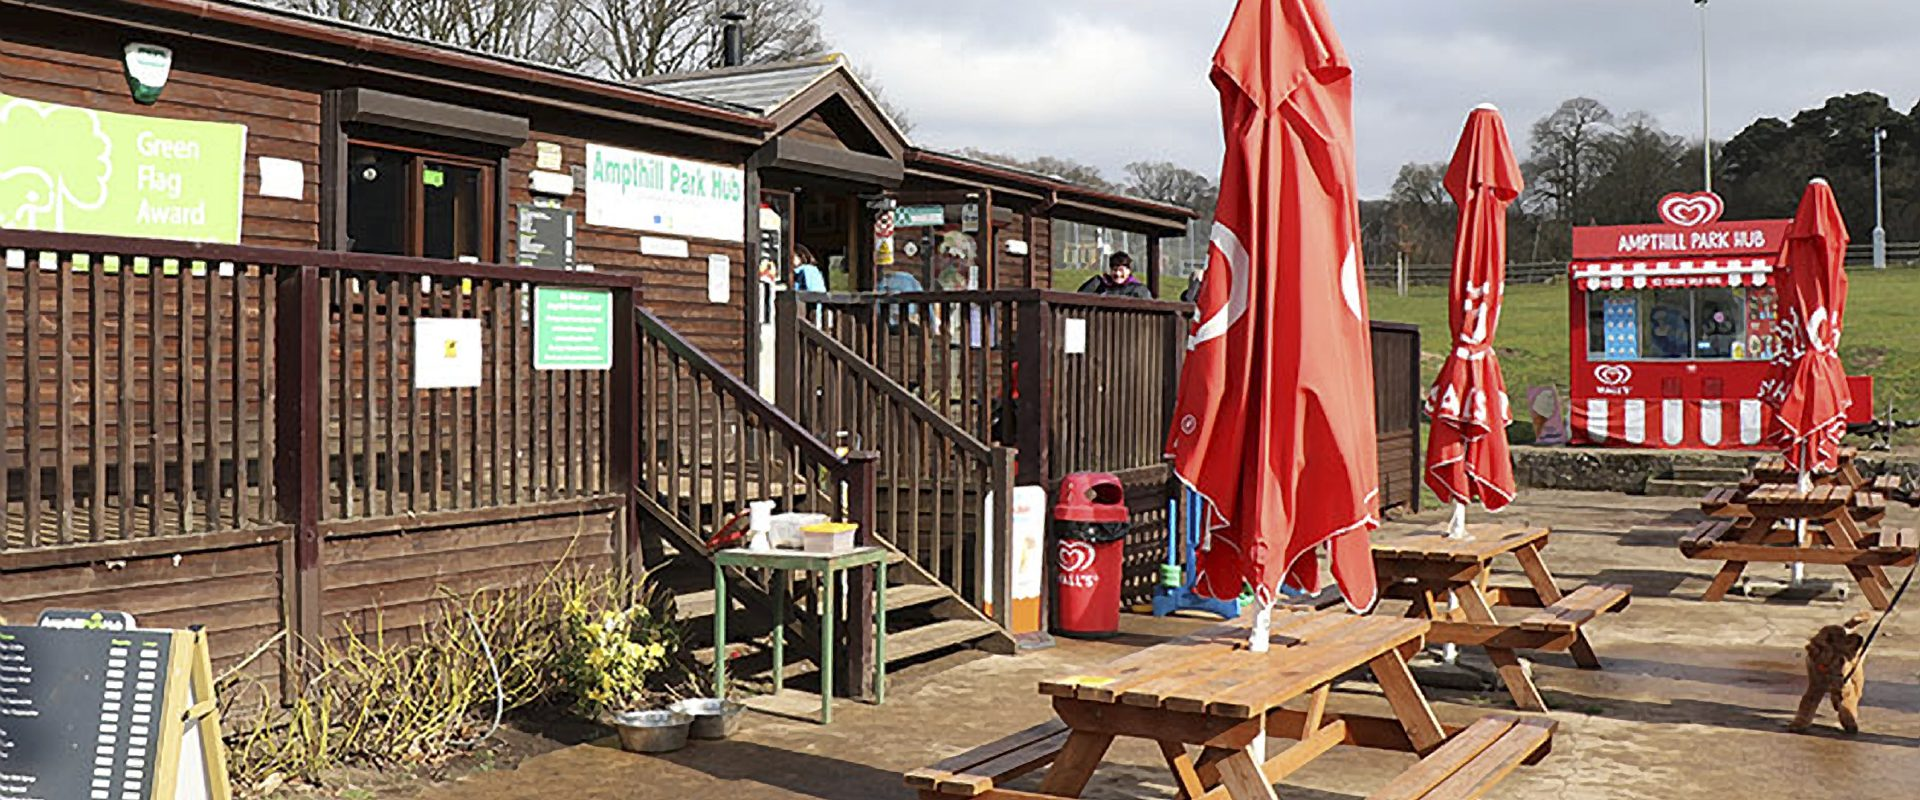 Ampthill_great_park_cafe_800x500